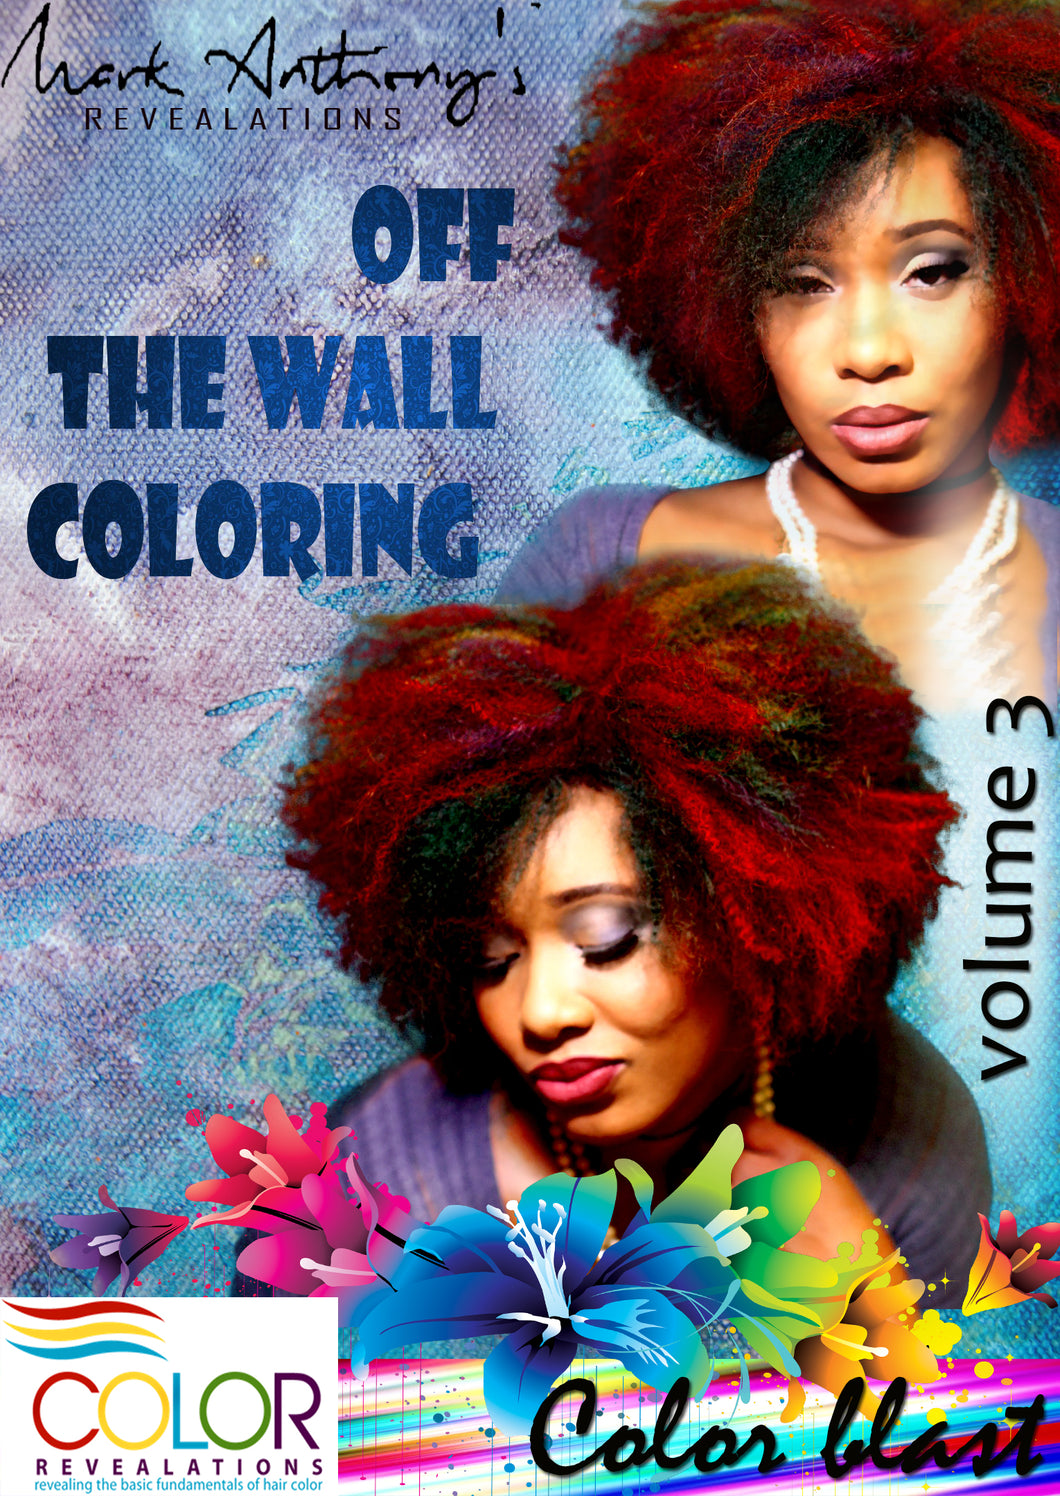 OFF THE WALL COLORING,  DVD